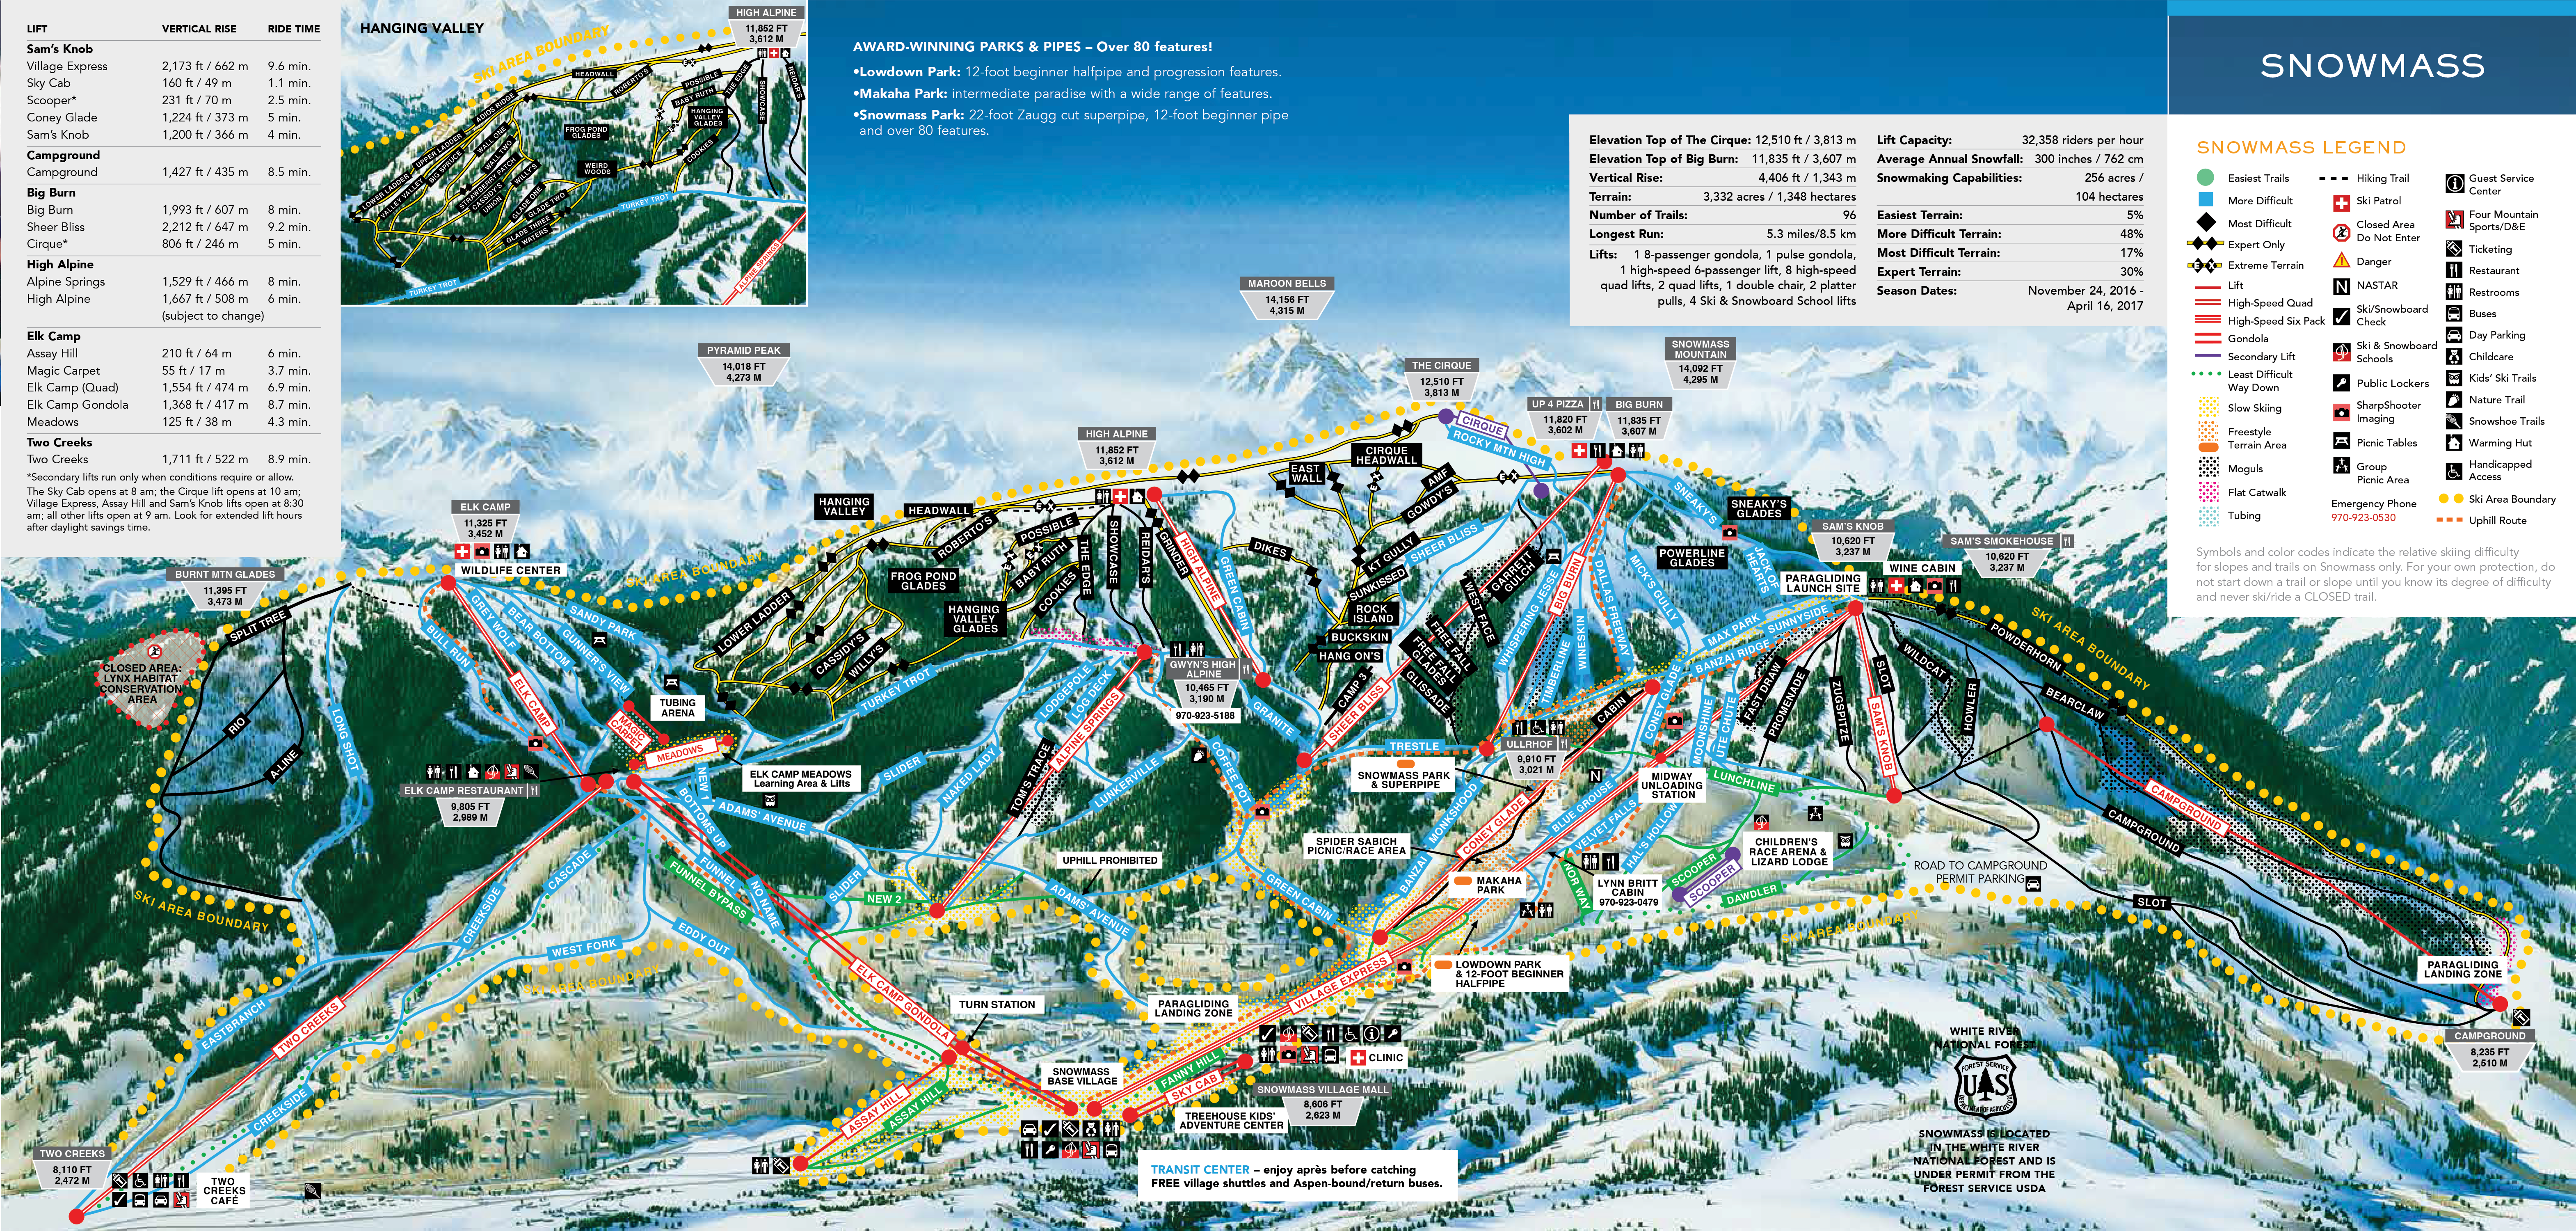 Snowmass Ski Map Snowmass   SkiMap.org Snowmass Ski Map